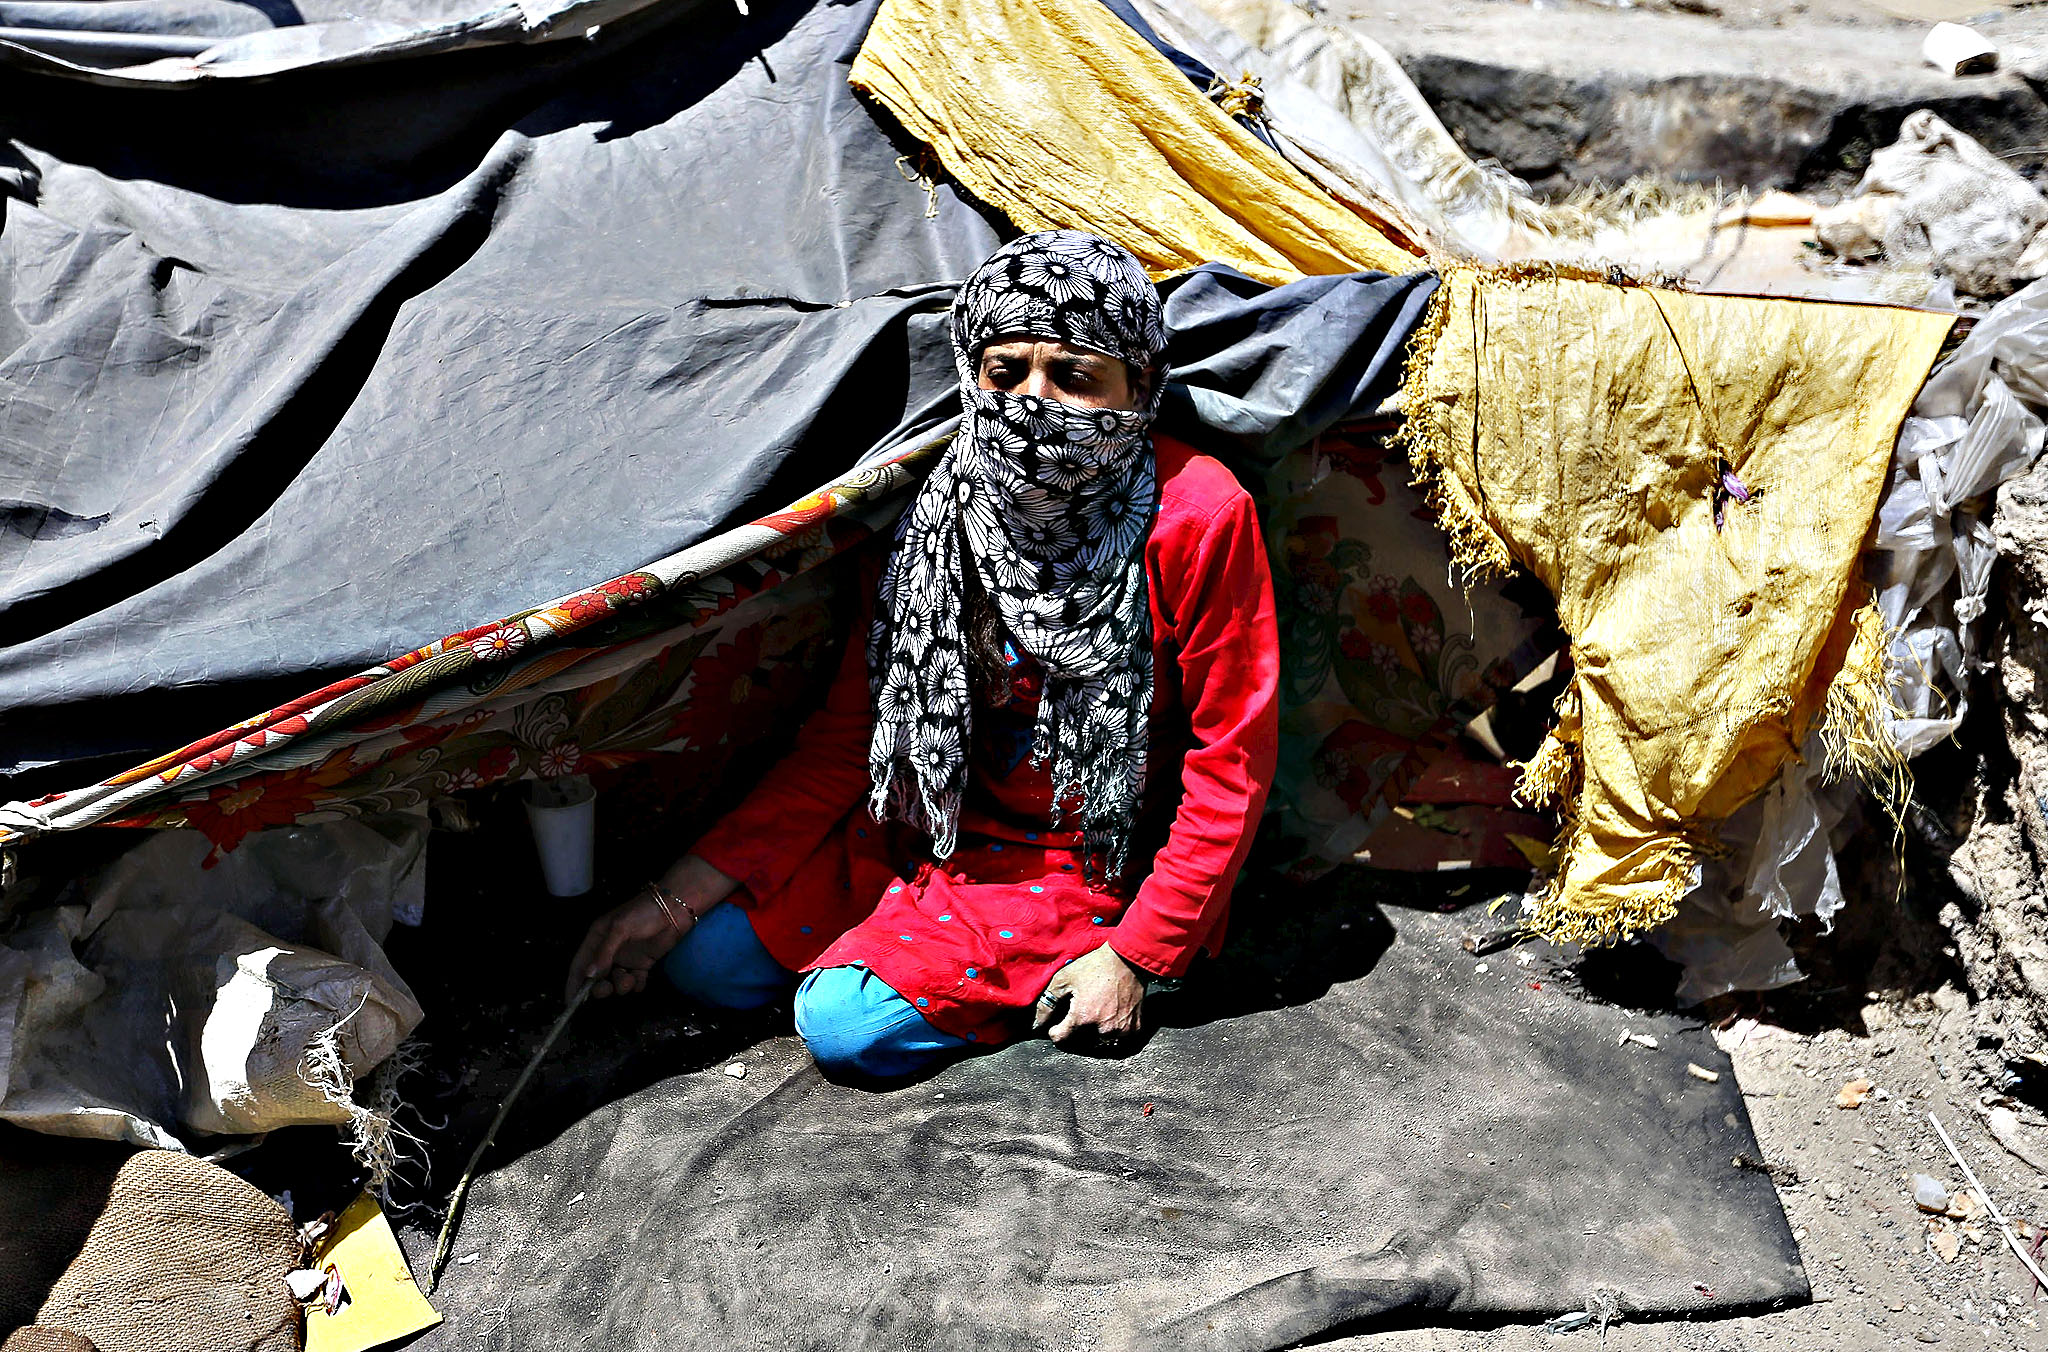 .A female Afghan drug addict sits near a bridge inhabited by drug addicts in Kabul, Afghanistan June 1, 2015